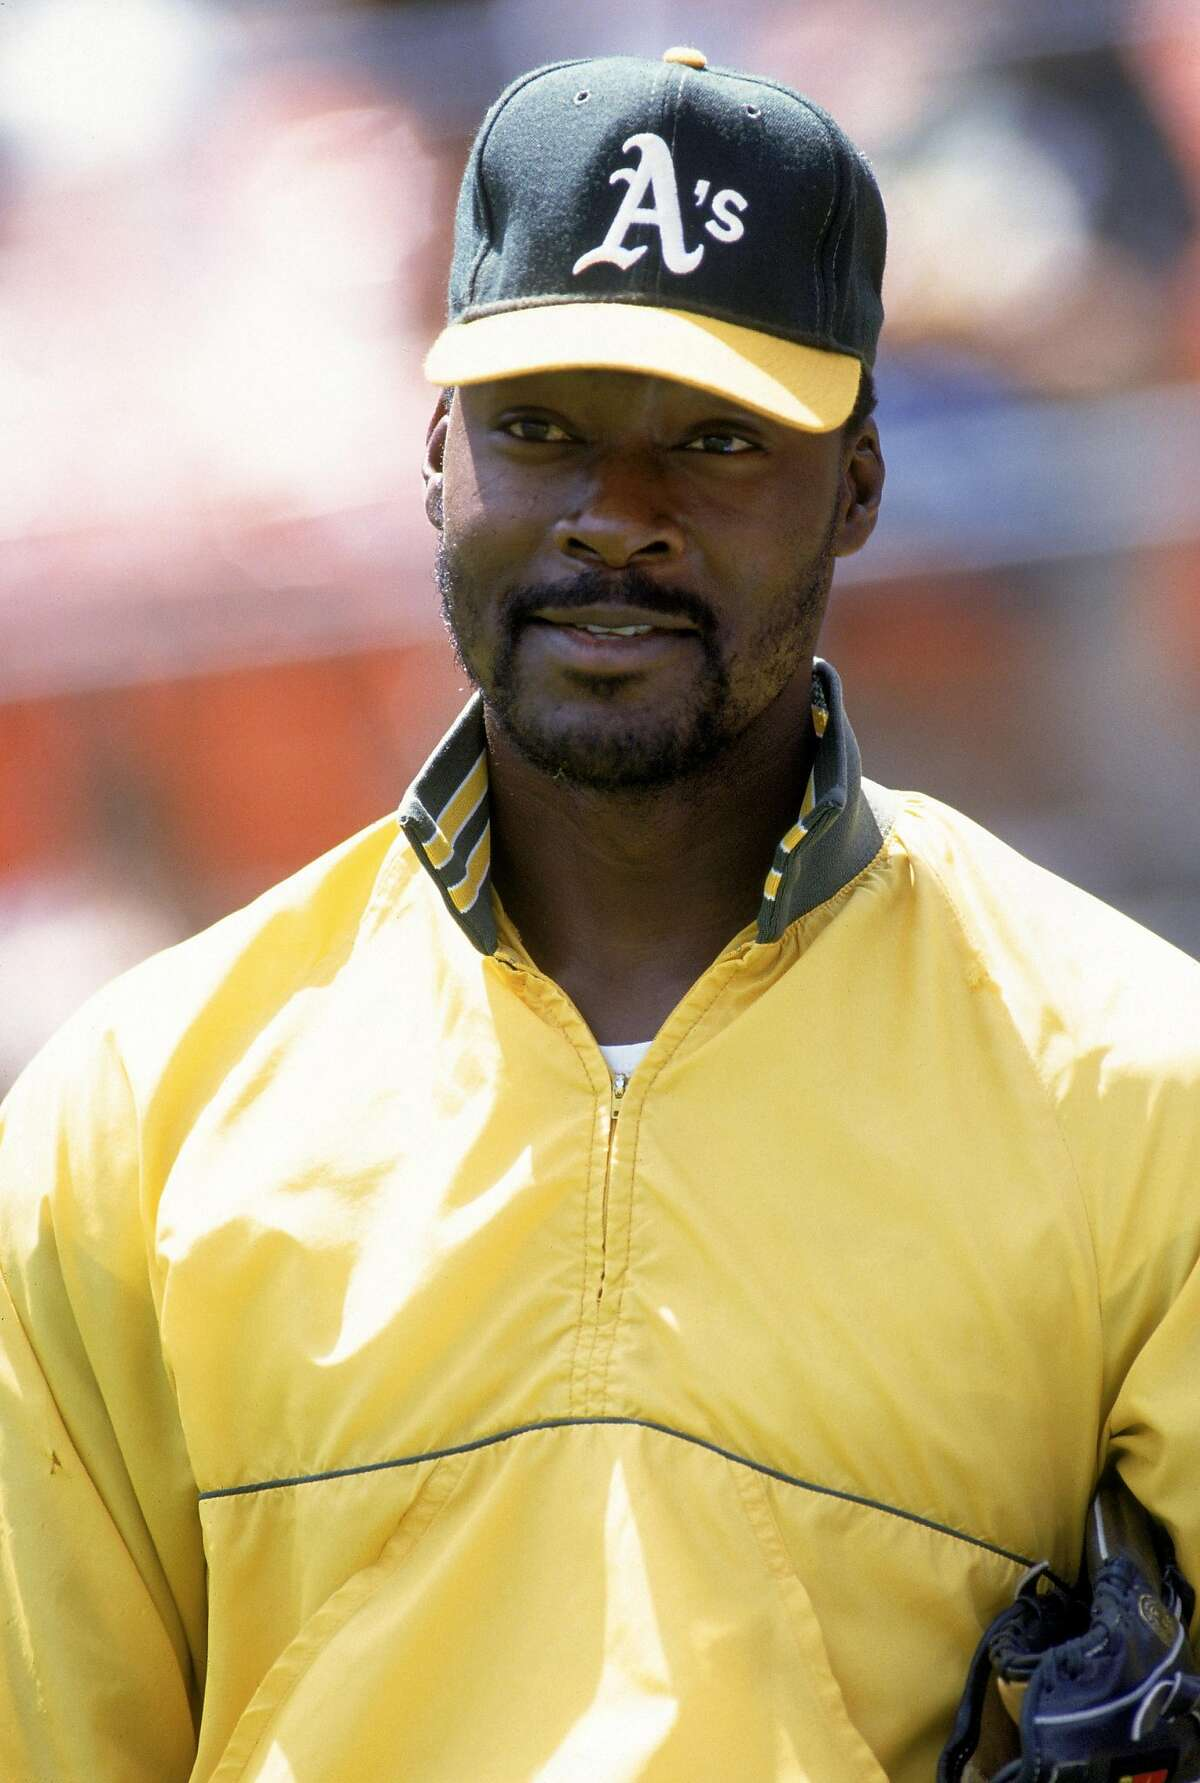 OAKLAND - 1990: Pitcher Dave Stewart #34 of the Oakland Athletics stand on the field before a game during the 1990 season at Oakland Alameda County Stadium in Oakland, California. (Photo by Otto Greule Jr/Getty Images)